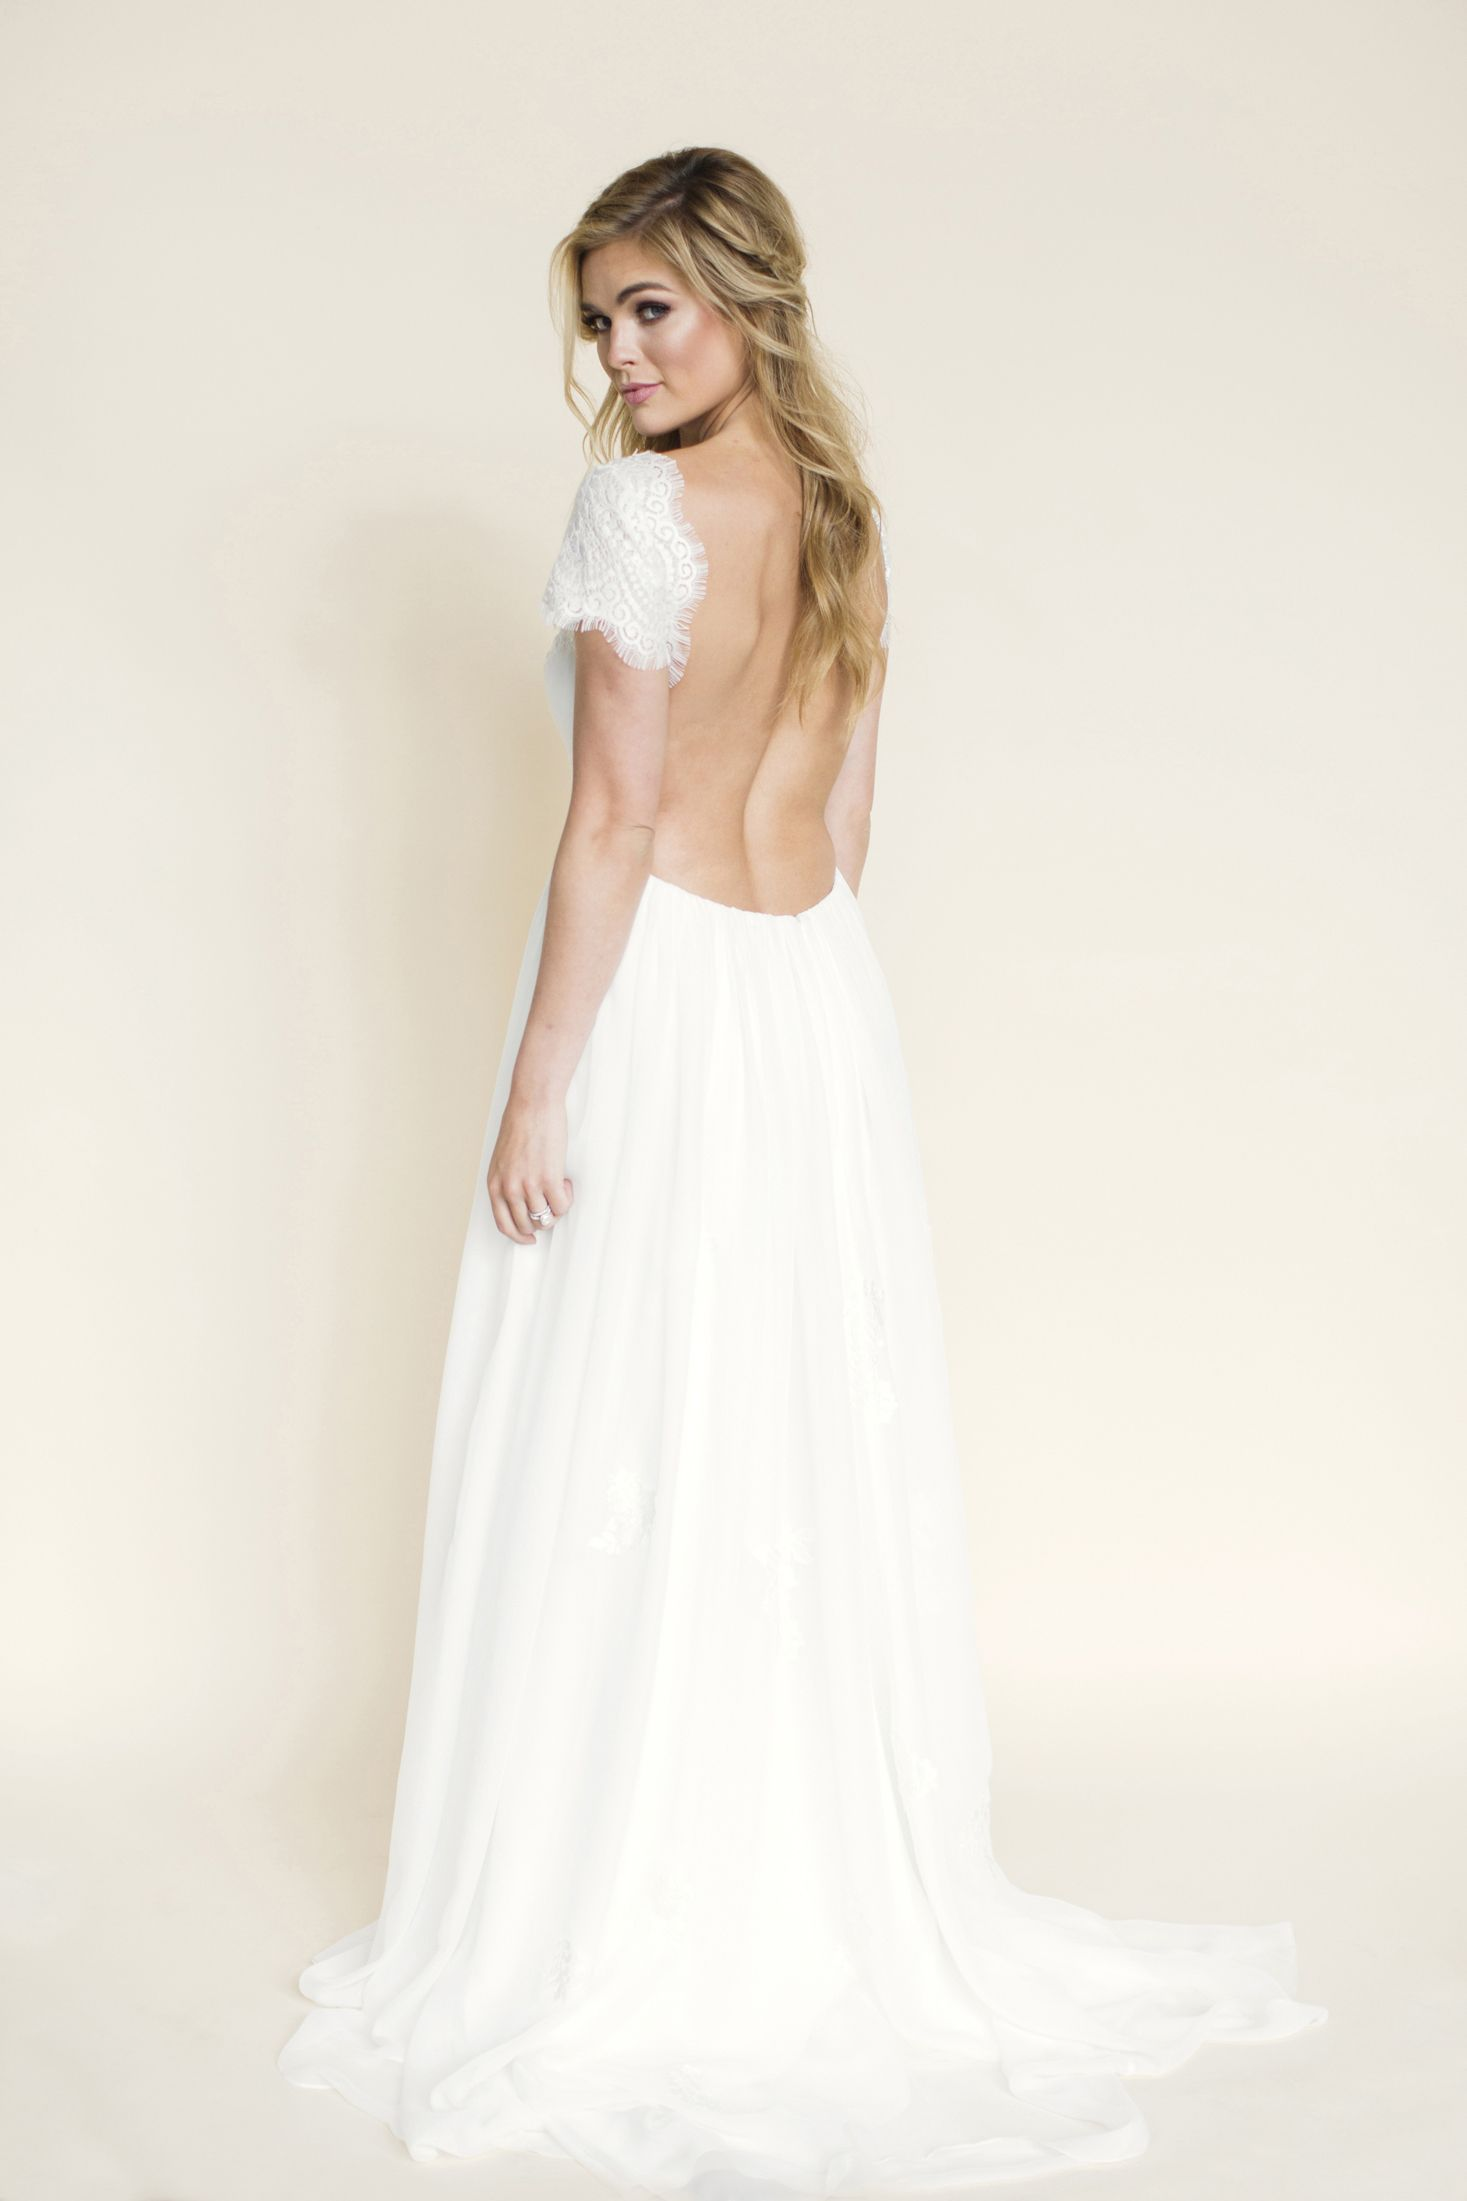 Lace wedding dress with cap sleeves sweetheart neckline  Sunny Darling  This freespirited dress features a modified vneck